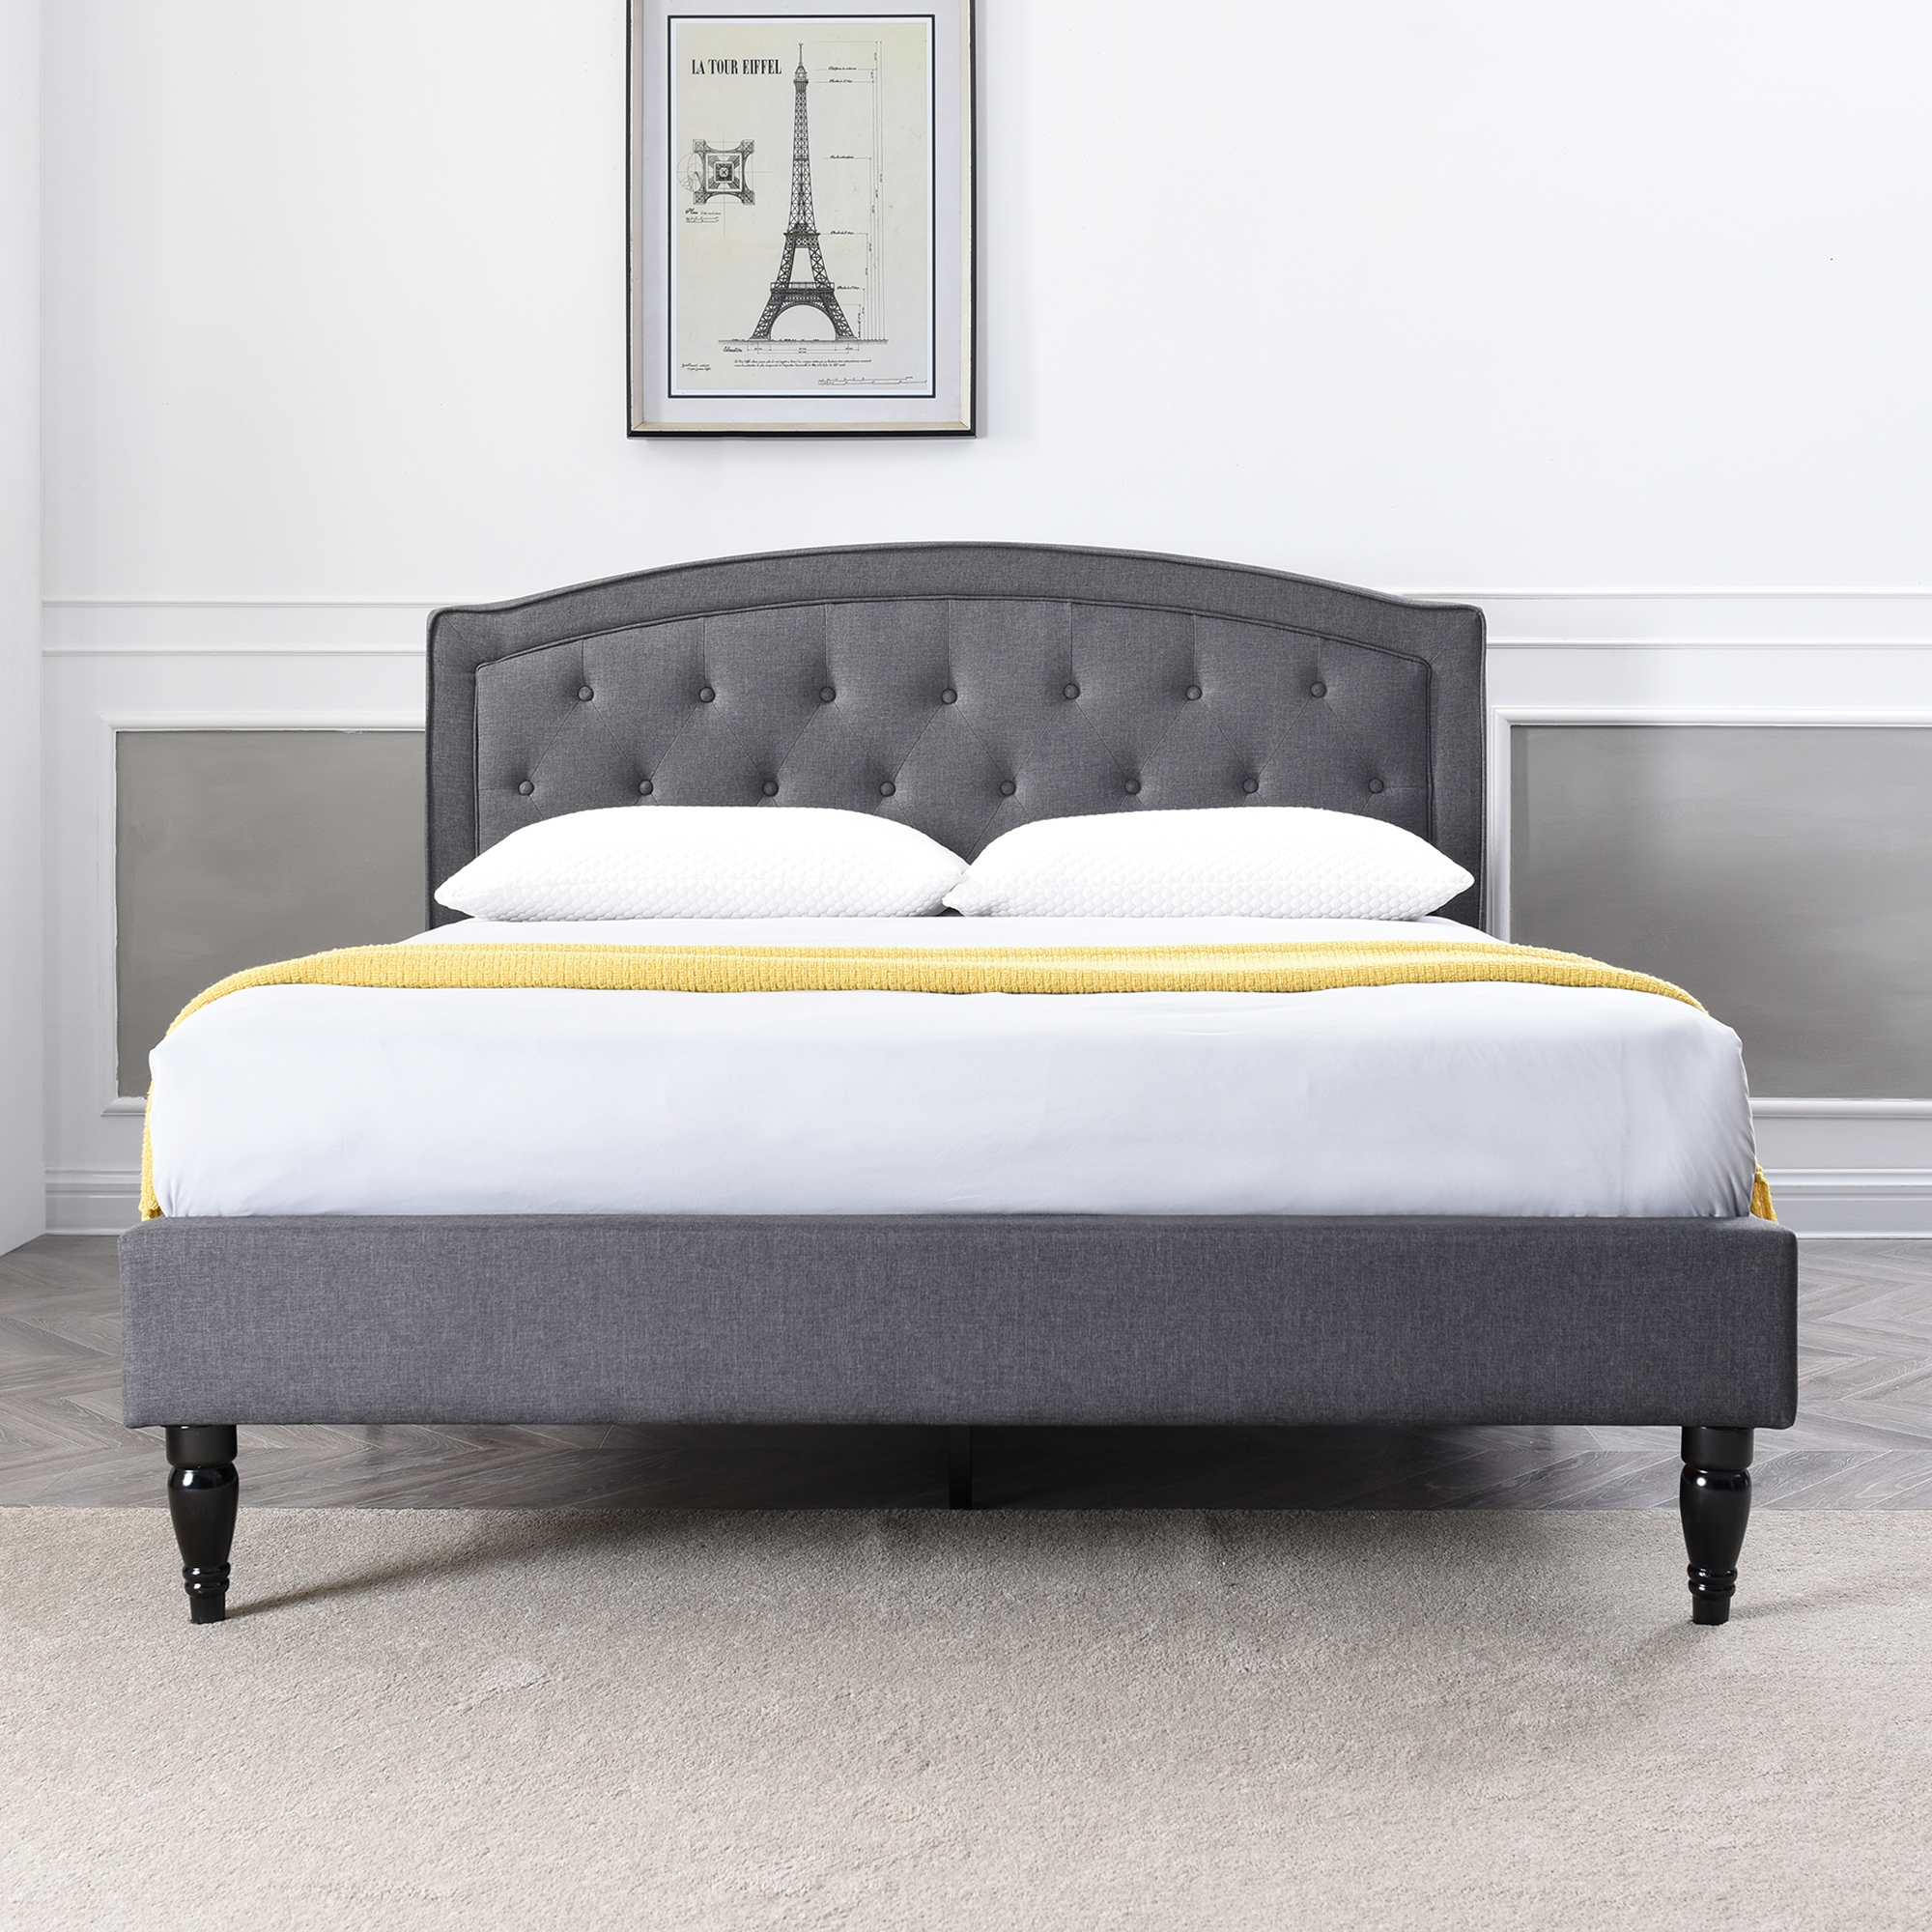 Modern Sleep Wellesley Upholstered Platform Bed Headboard And Metal Frame With Wood Slat Support Grey Multiple Sizes Walmart Com Walmart Com